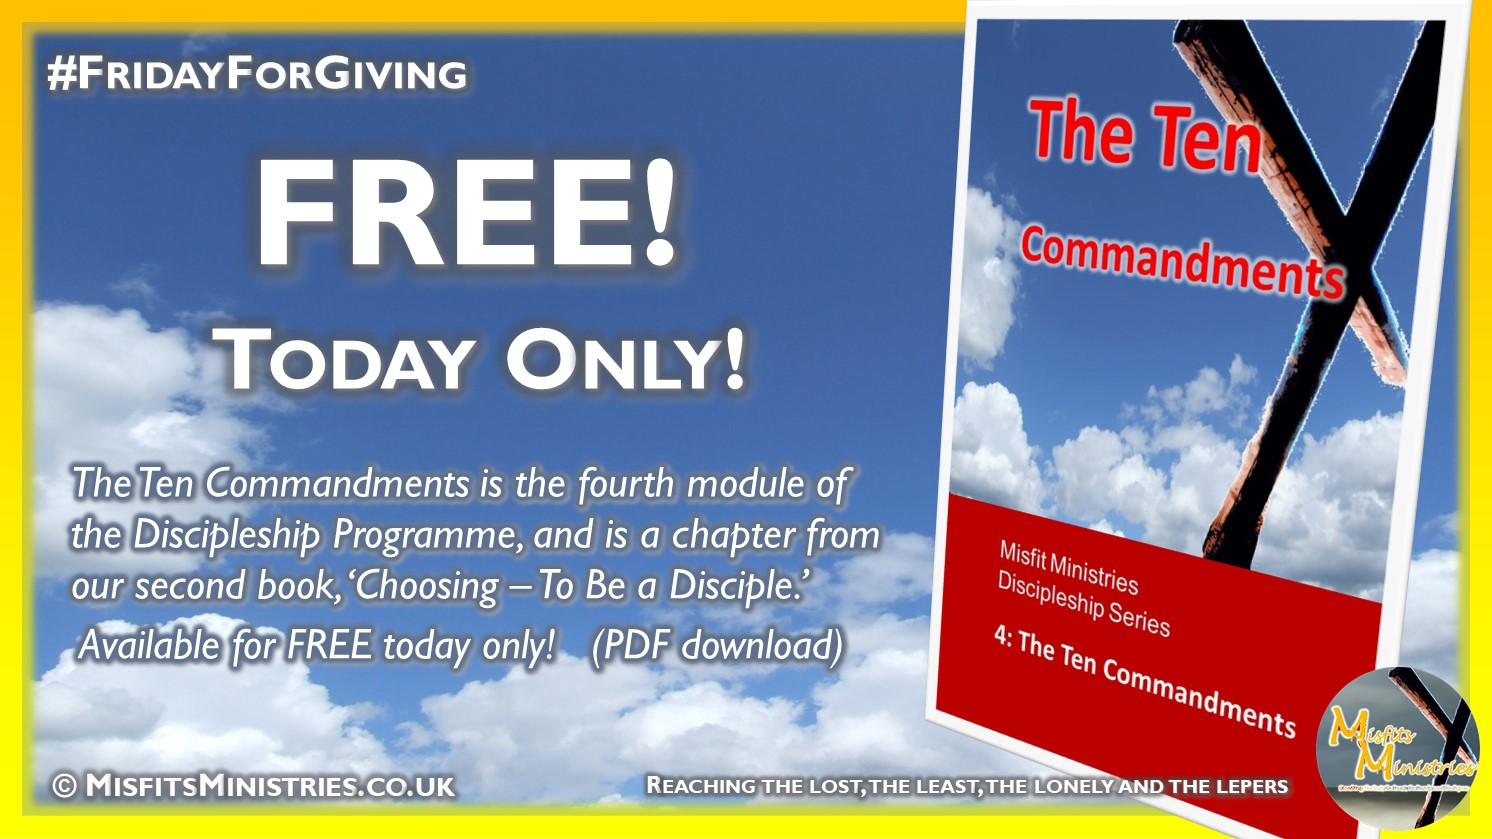 Friday For Giving - The Ten Commandments